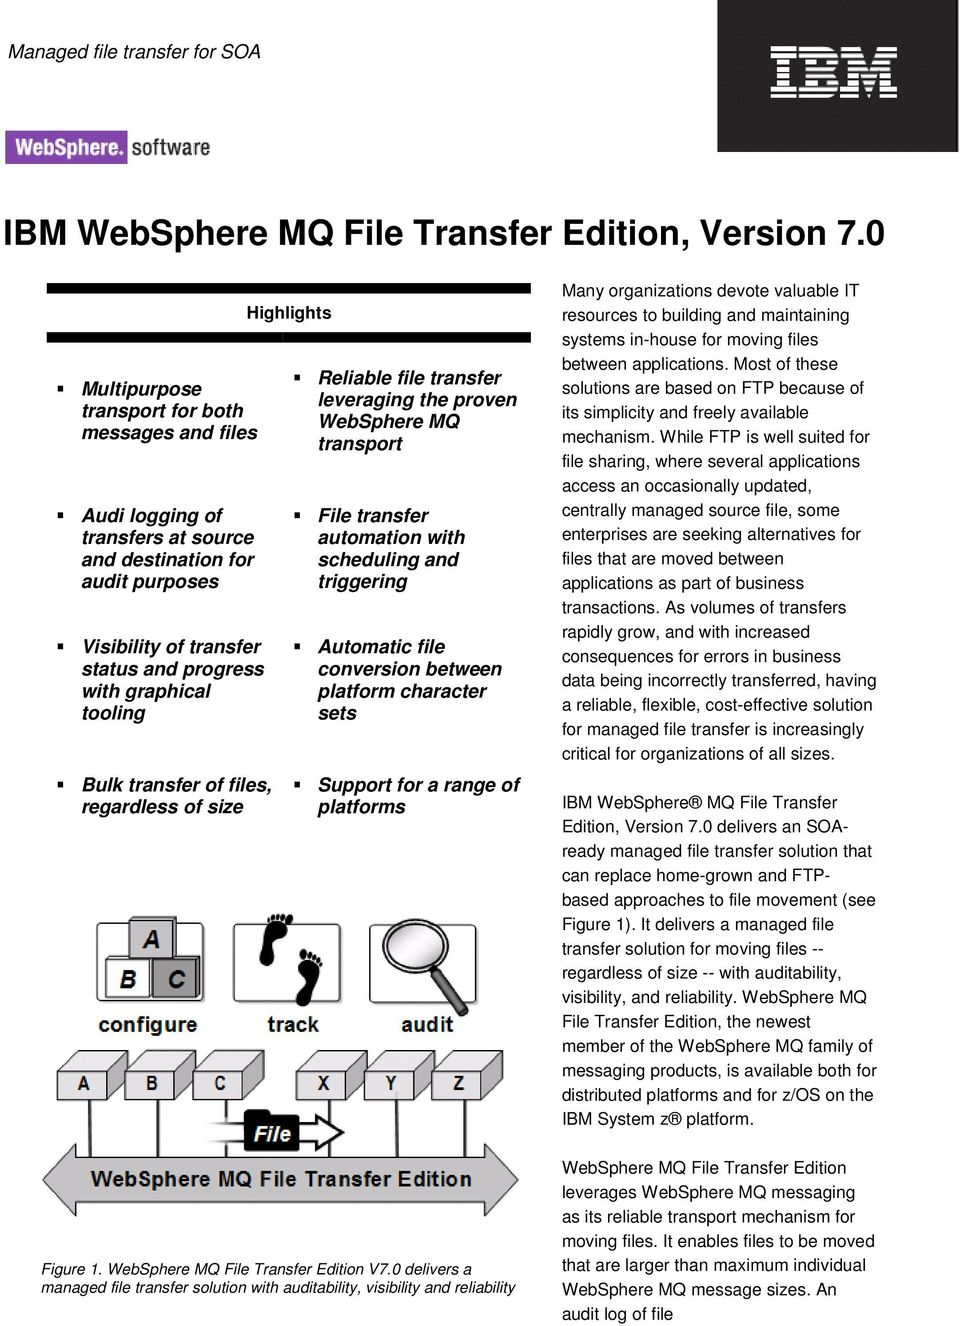 transfer of files, regardless of size Highlights Reliable file transfer leveraging the proven WebSphere MQ transport File transfer automation with scheduling and triggering Automatic file conversion